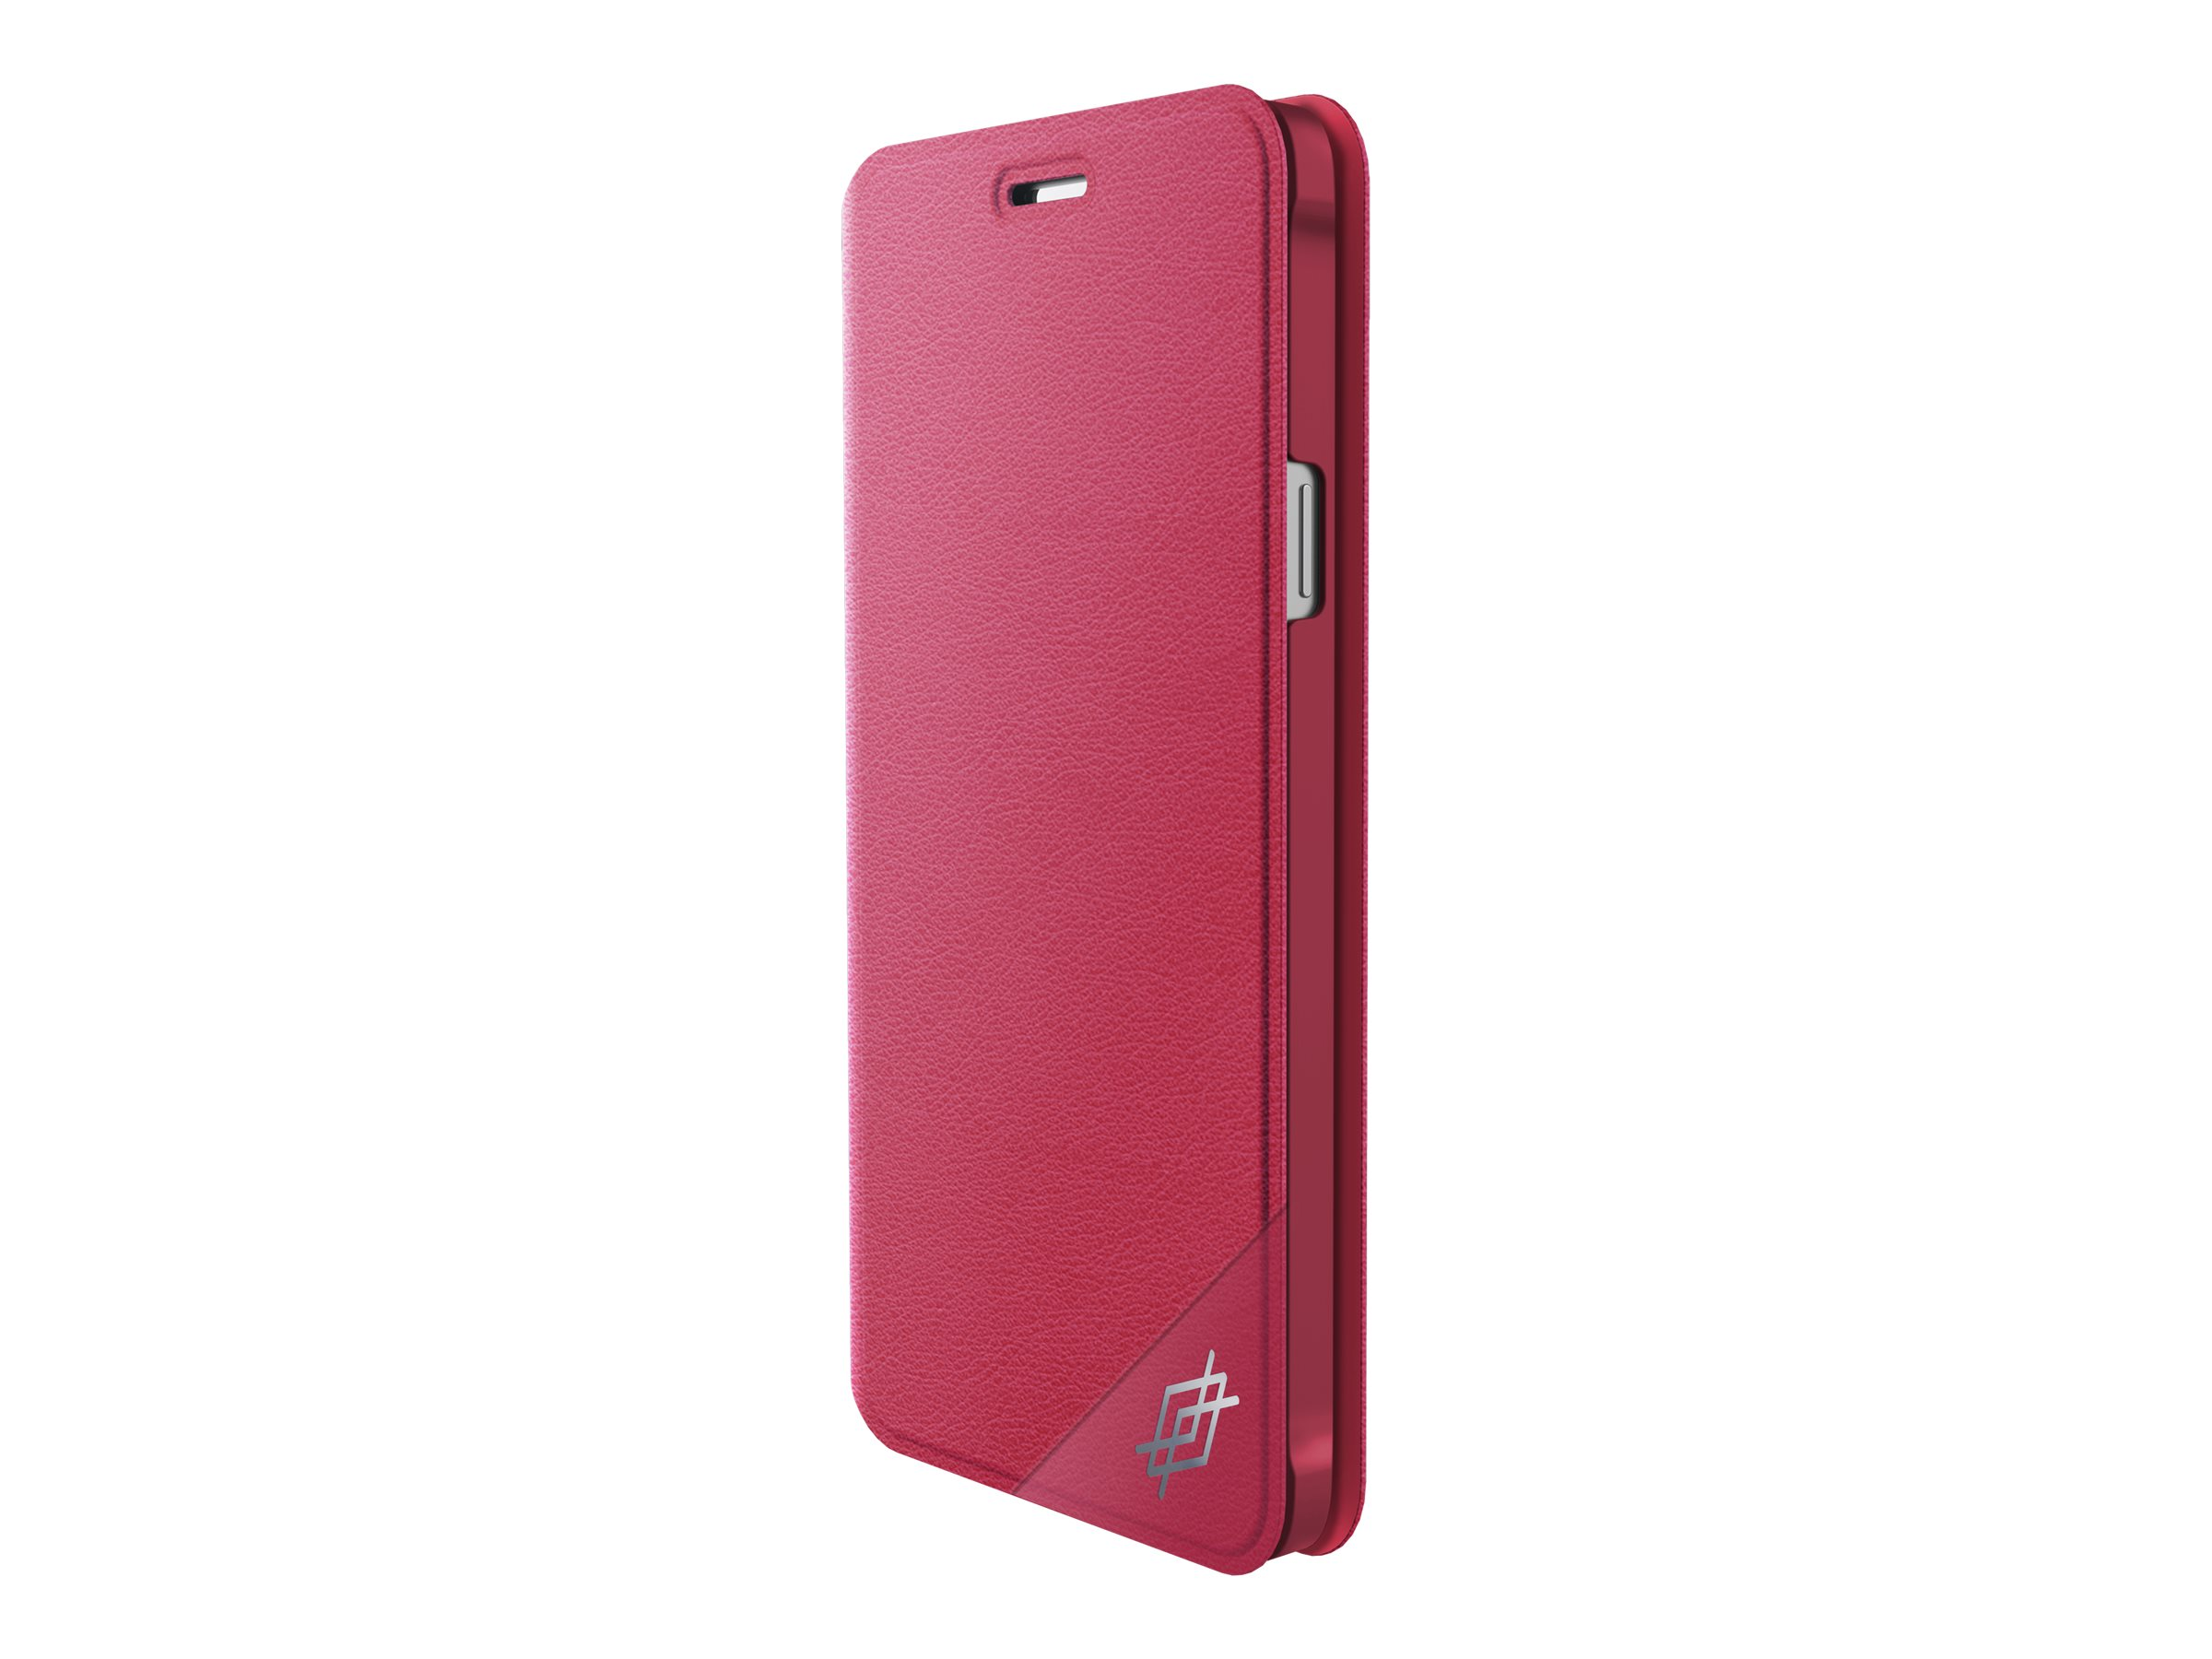 X-Doria Dash Folio One - Protection à rabat pour Samsung Galaxy Note 4 - rouge